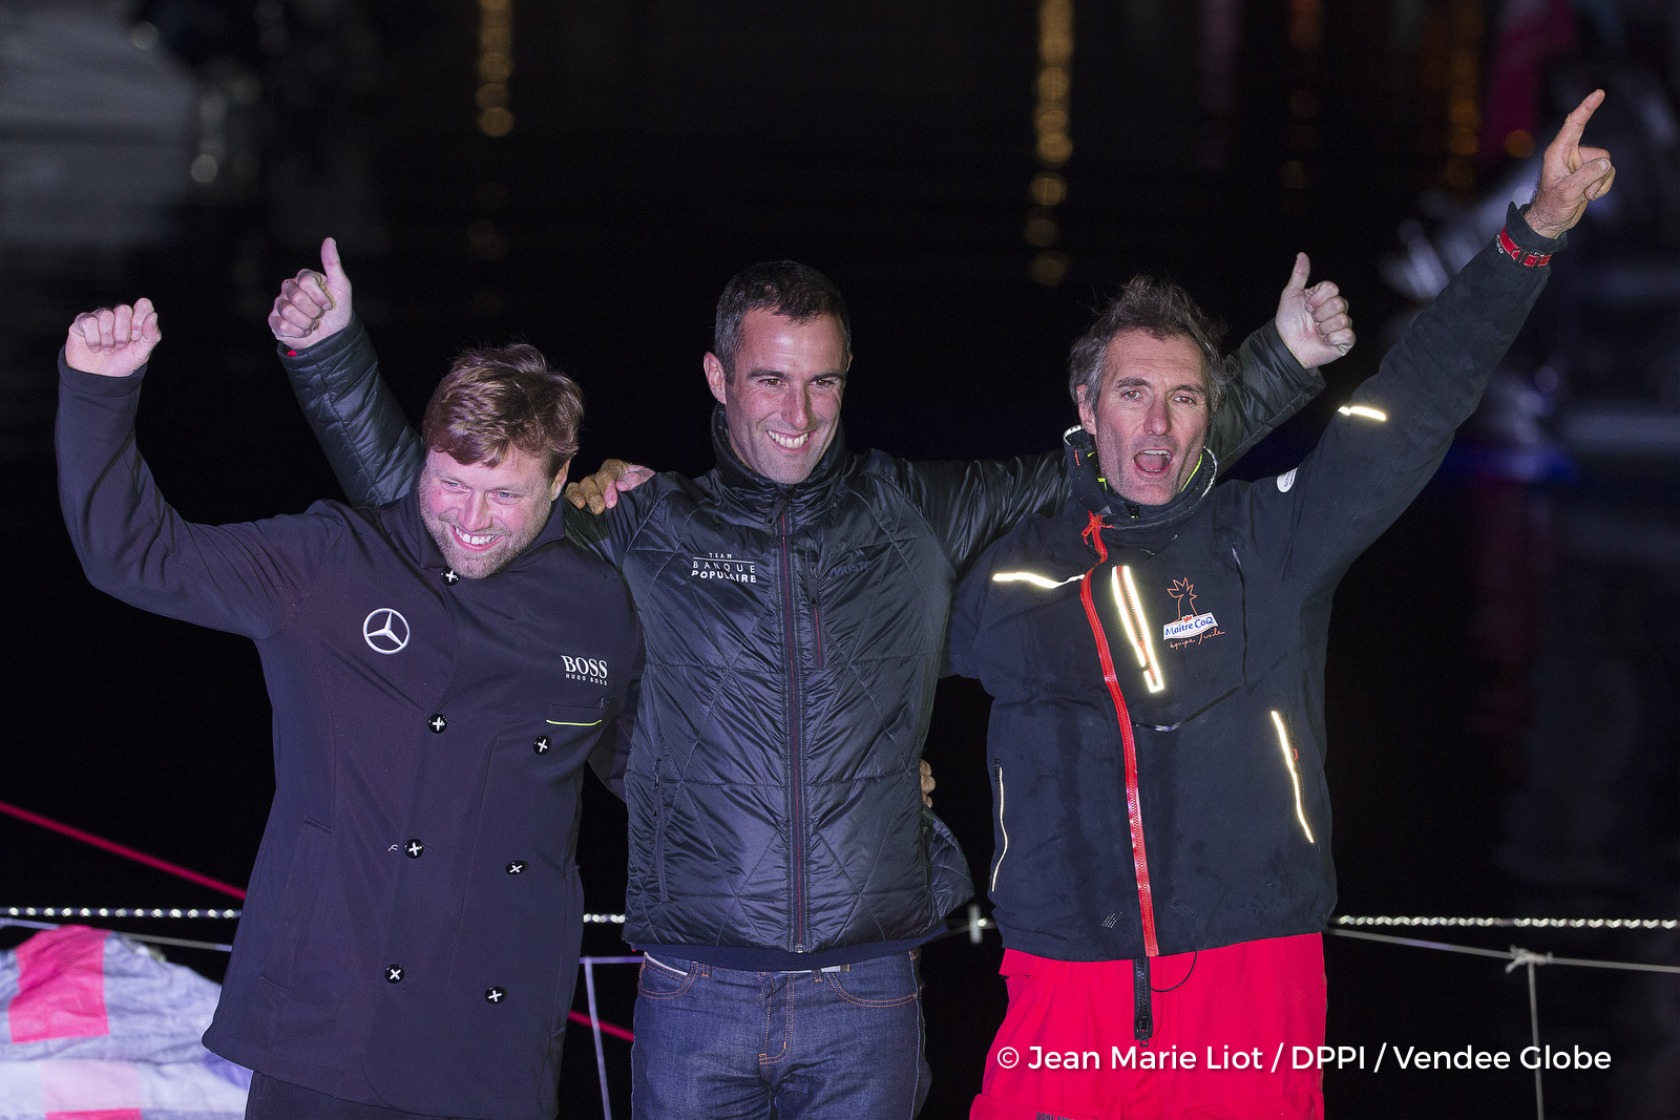 Podium with Armel Le Cleac'h (FRA), skipper Banque Populaire VIII, (winner), Alex Thomson (GBR), skipper Hugo Boss, (2nd) and Jeremie Beyou (FRA), skipper Maitre Coq, 3rd of the sailing circumnavigation solo race Vendee Globe, in Les Sables d'Olonne, France, on January 23rd, 2017 - Photo Jean Marie Liot / DPPI / Vendee Globe